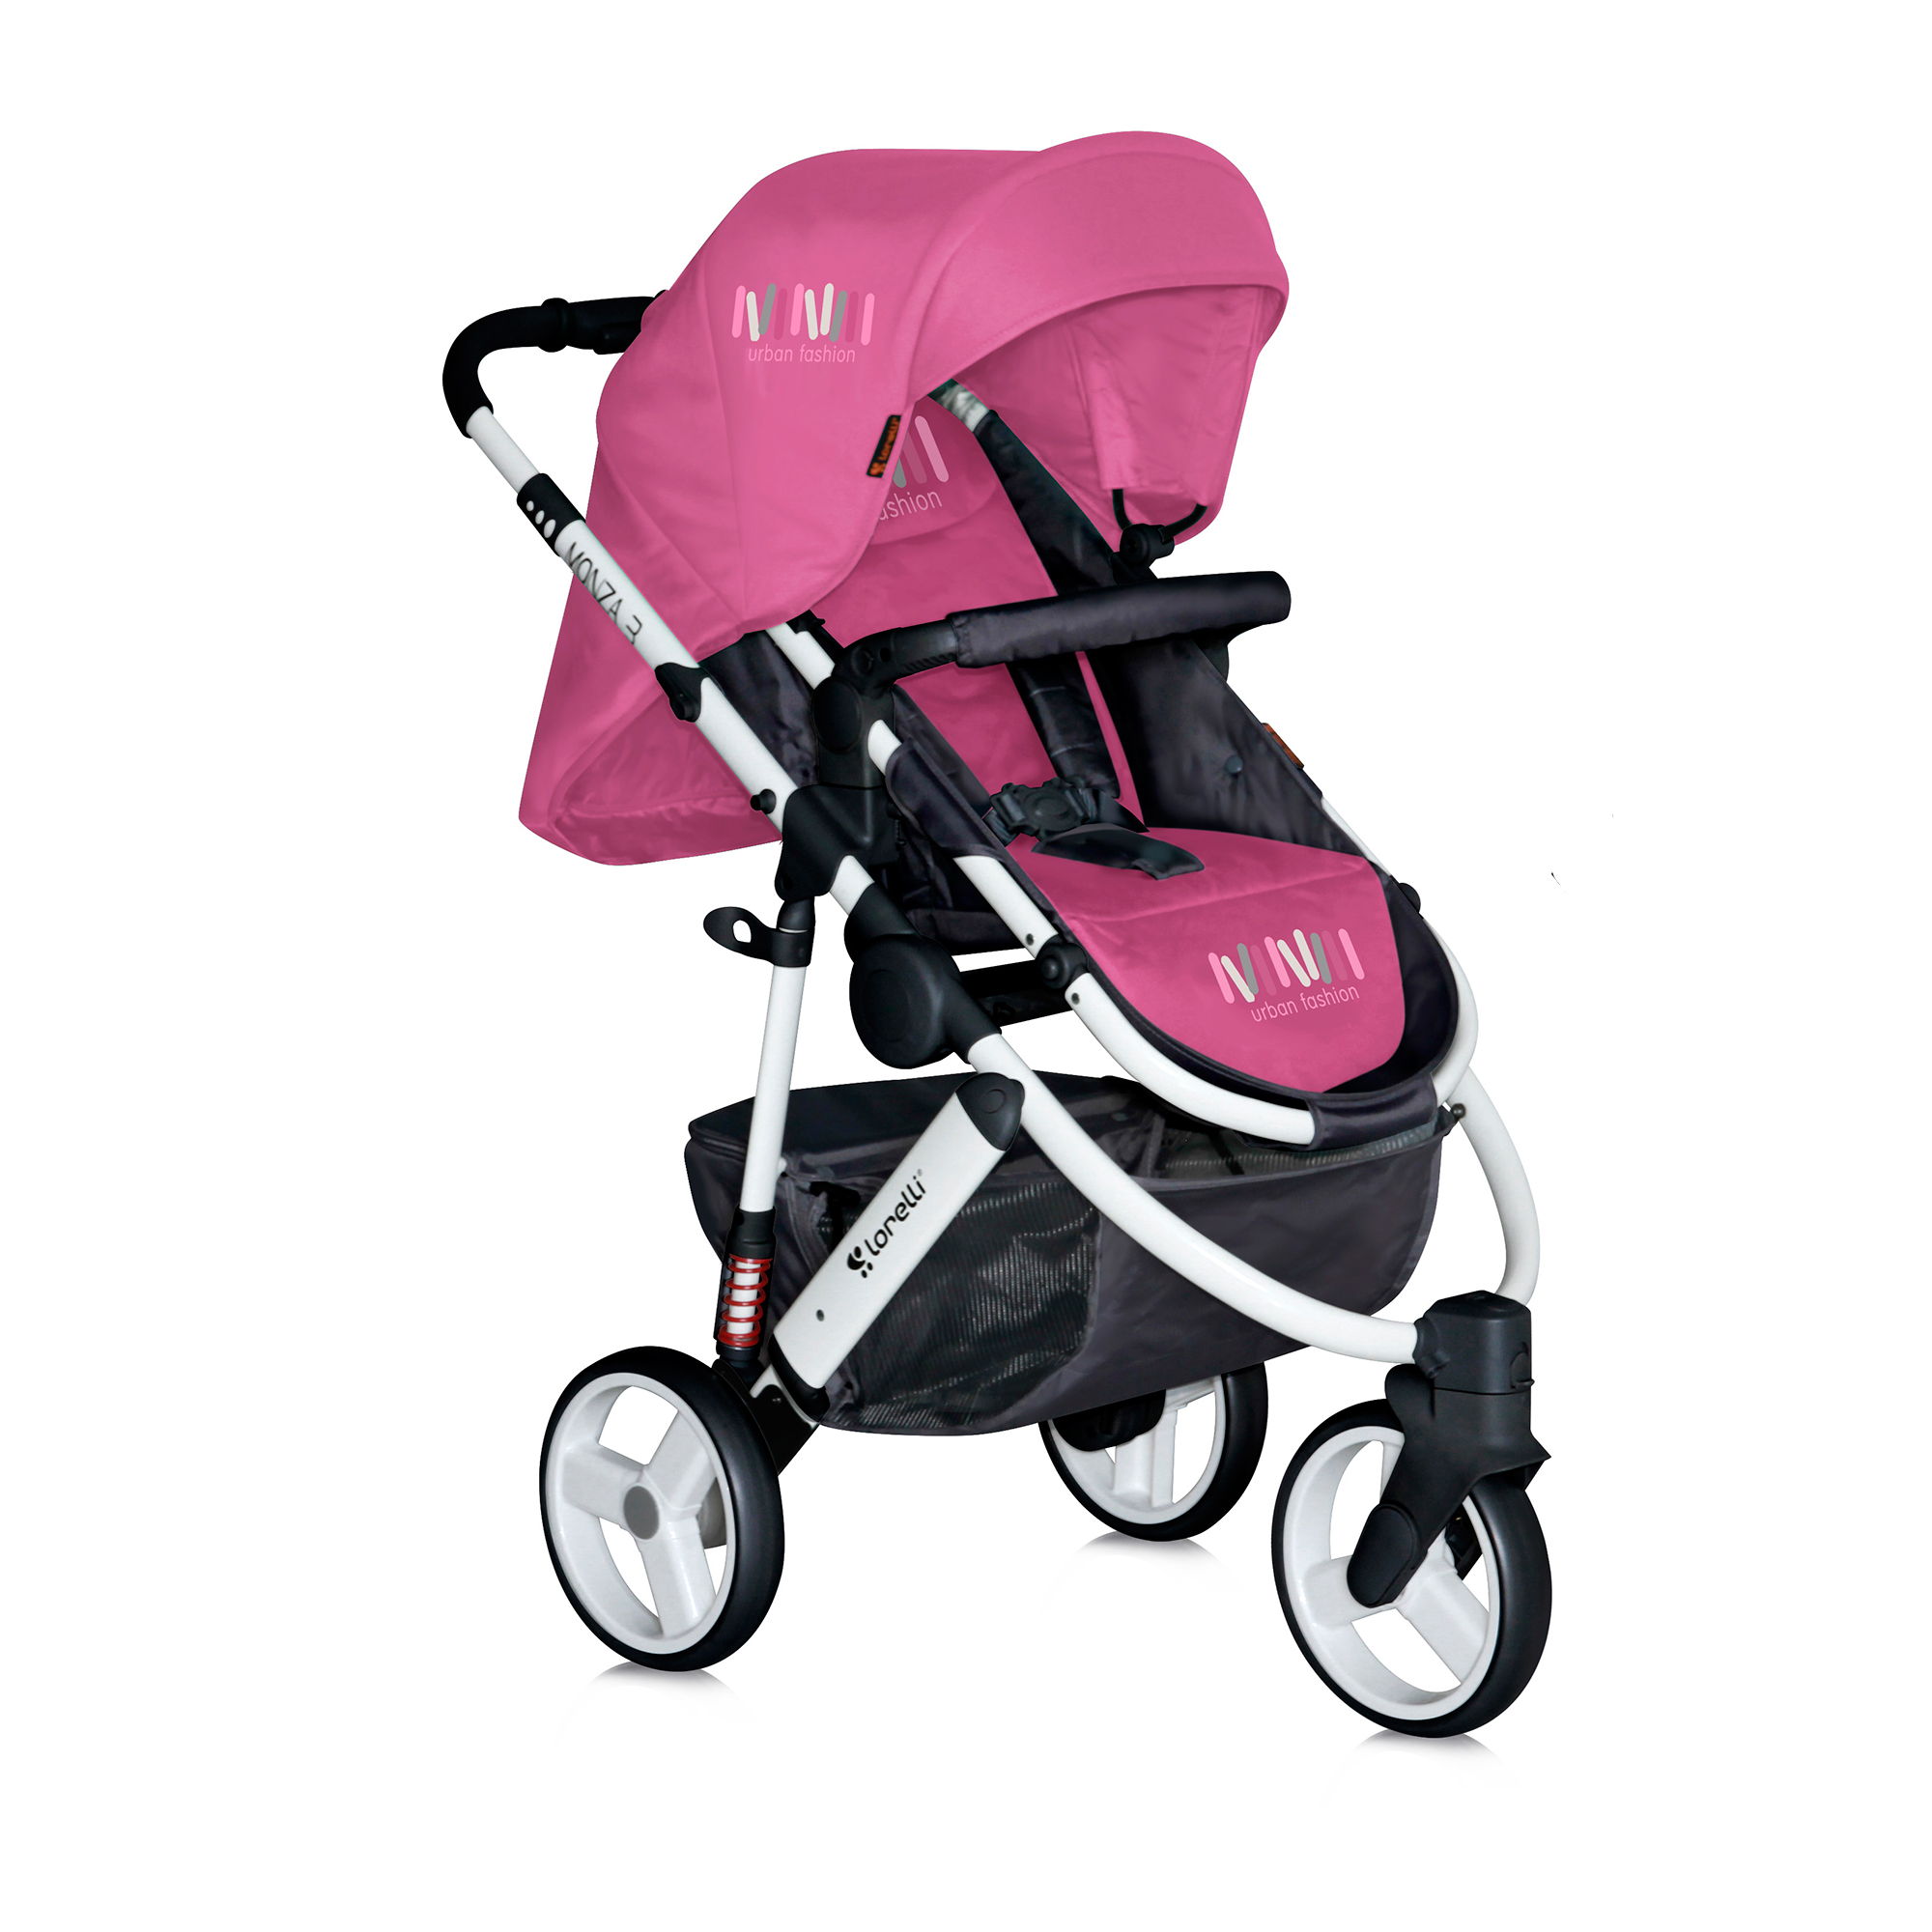 carucior copii 2 in 1 lorelli premium monza 3 - rose & black